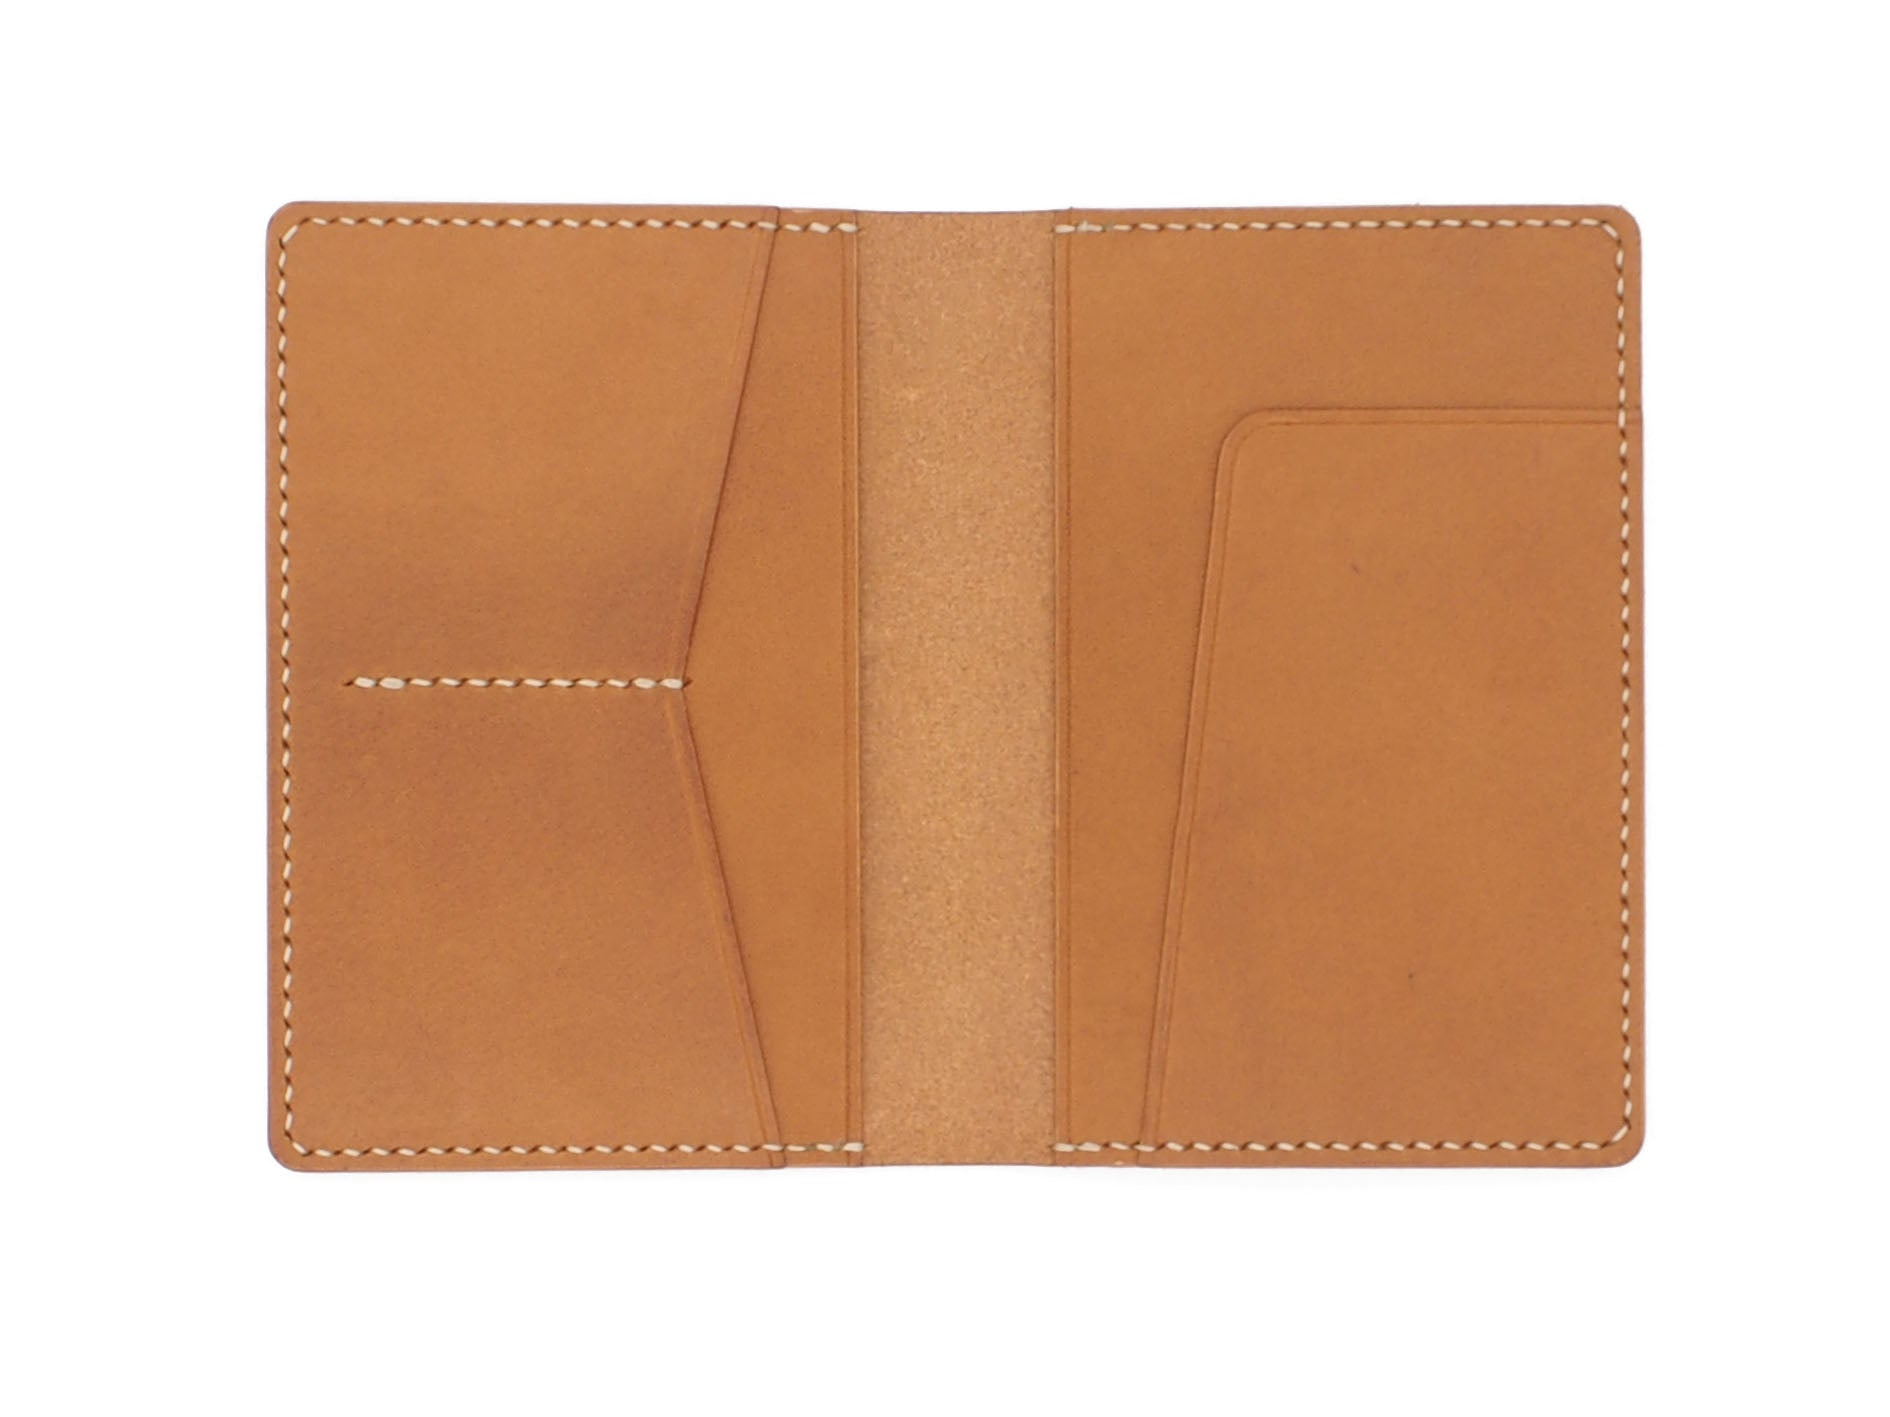 Nomad Mk.2 Passport Holder In Sand Buttero